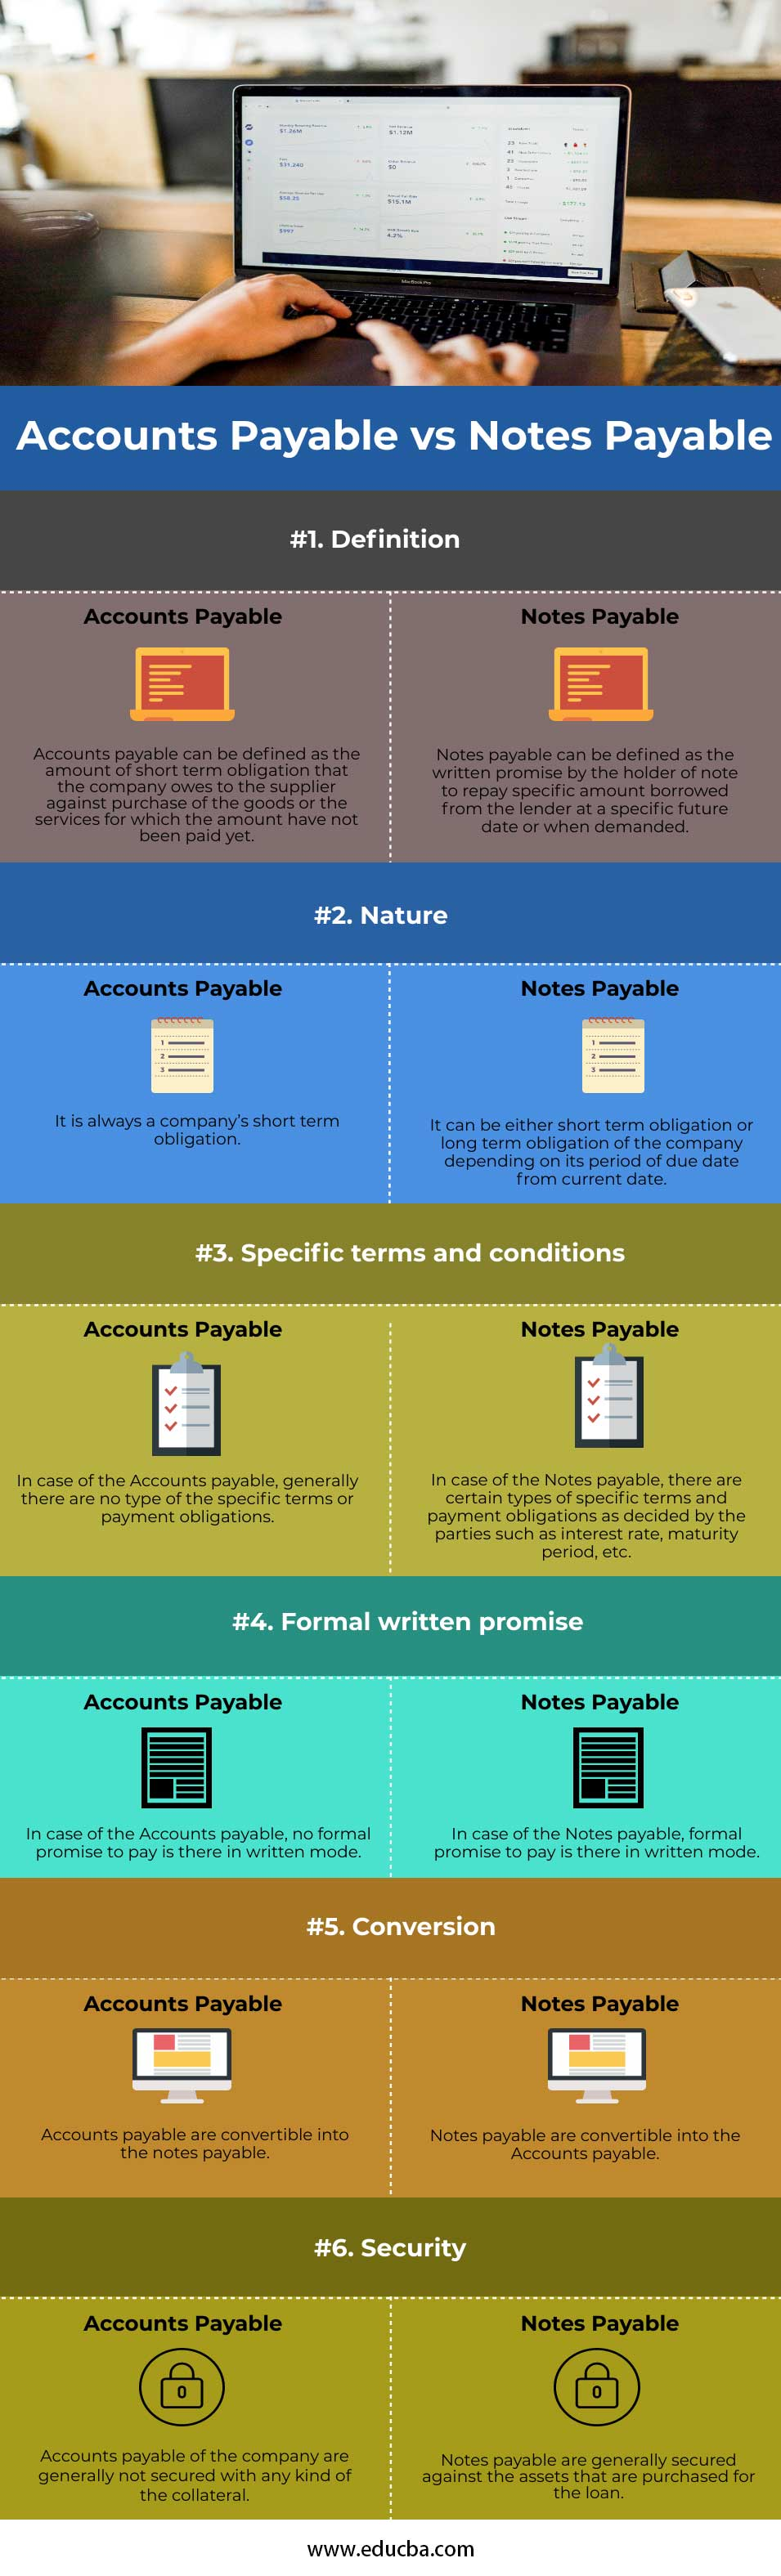 Accounts-Payable-vs-Notes-Payable-info